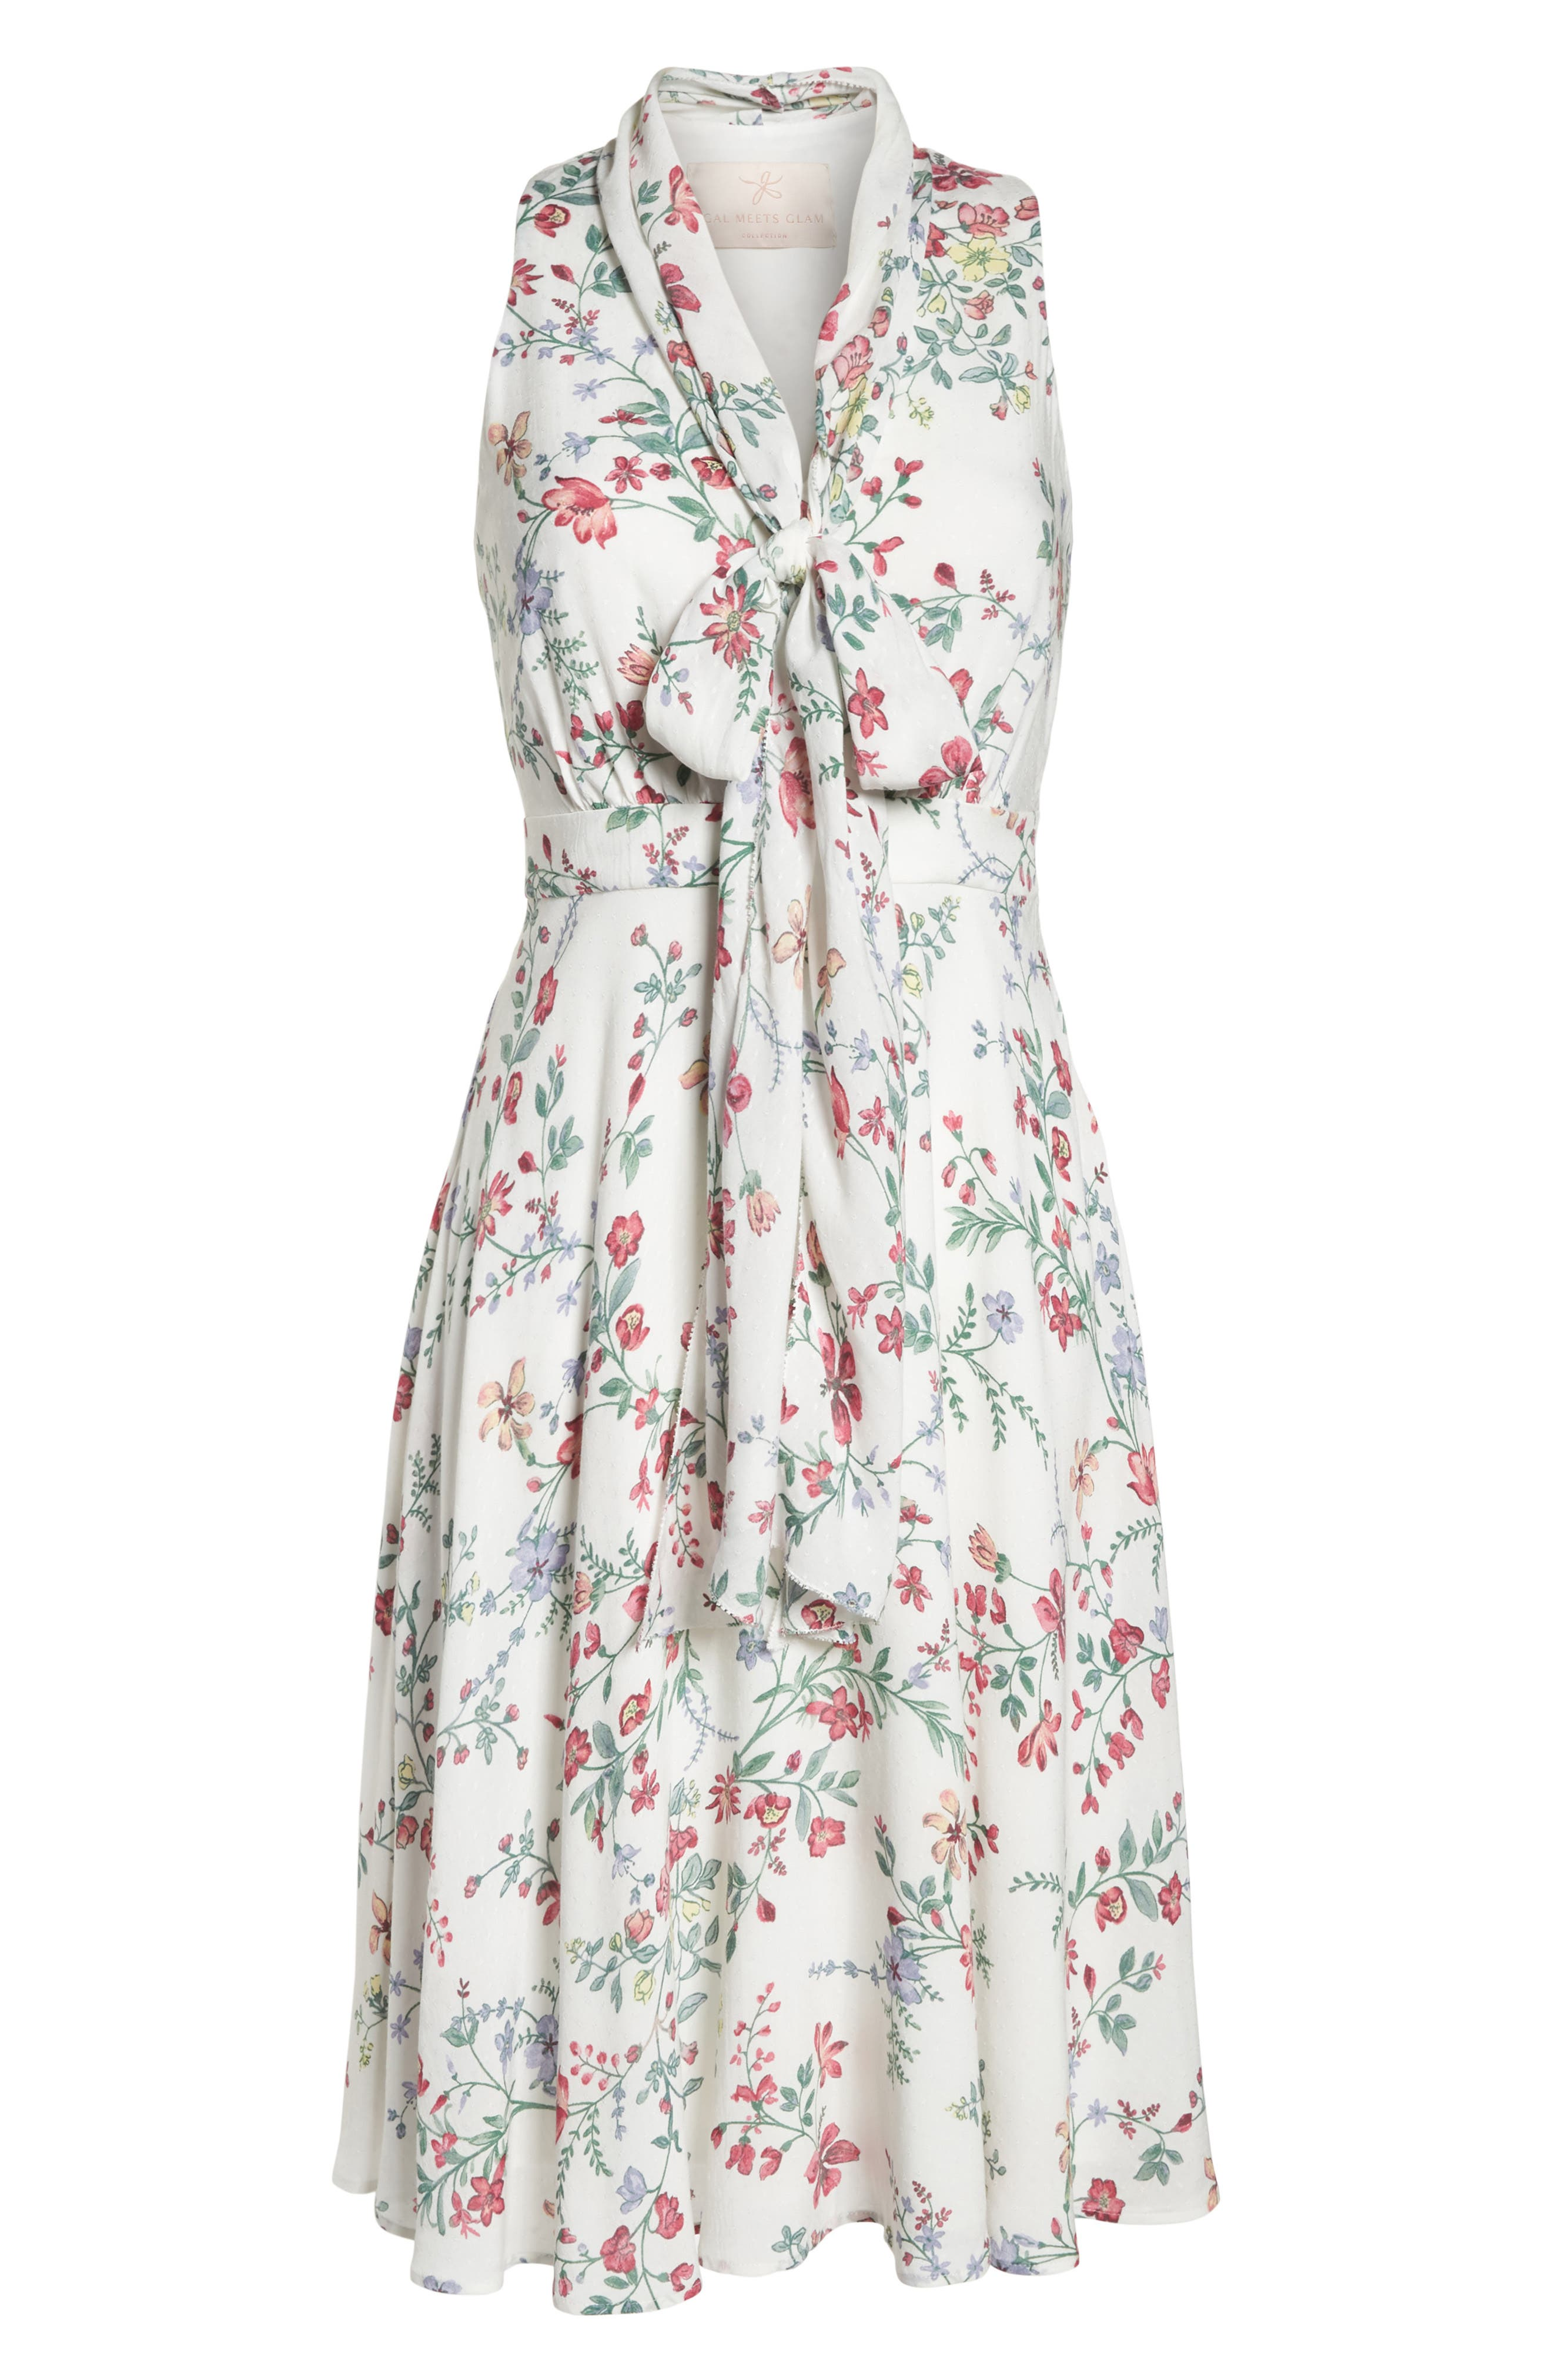 Alexis Delicate Blossom Print Tie Neck Dress,                             Alternate thumbnail 8, color,                             Pearl Rose